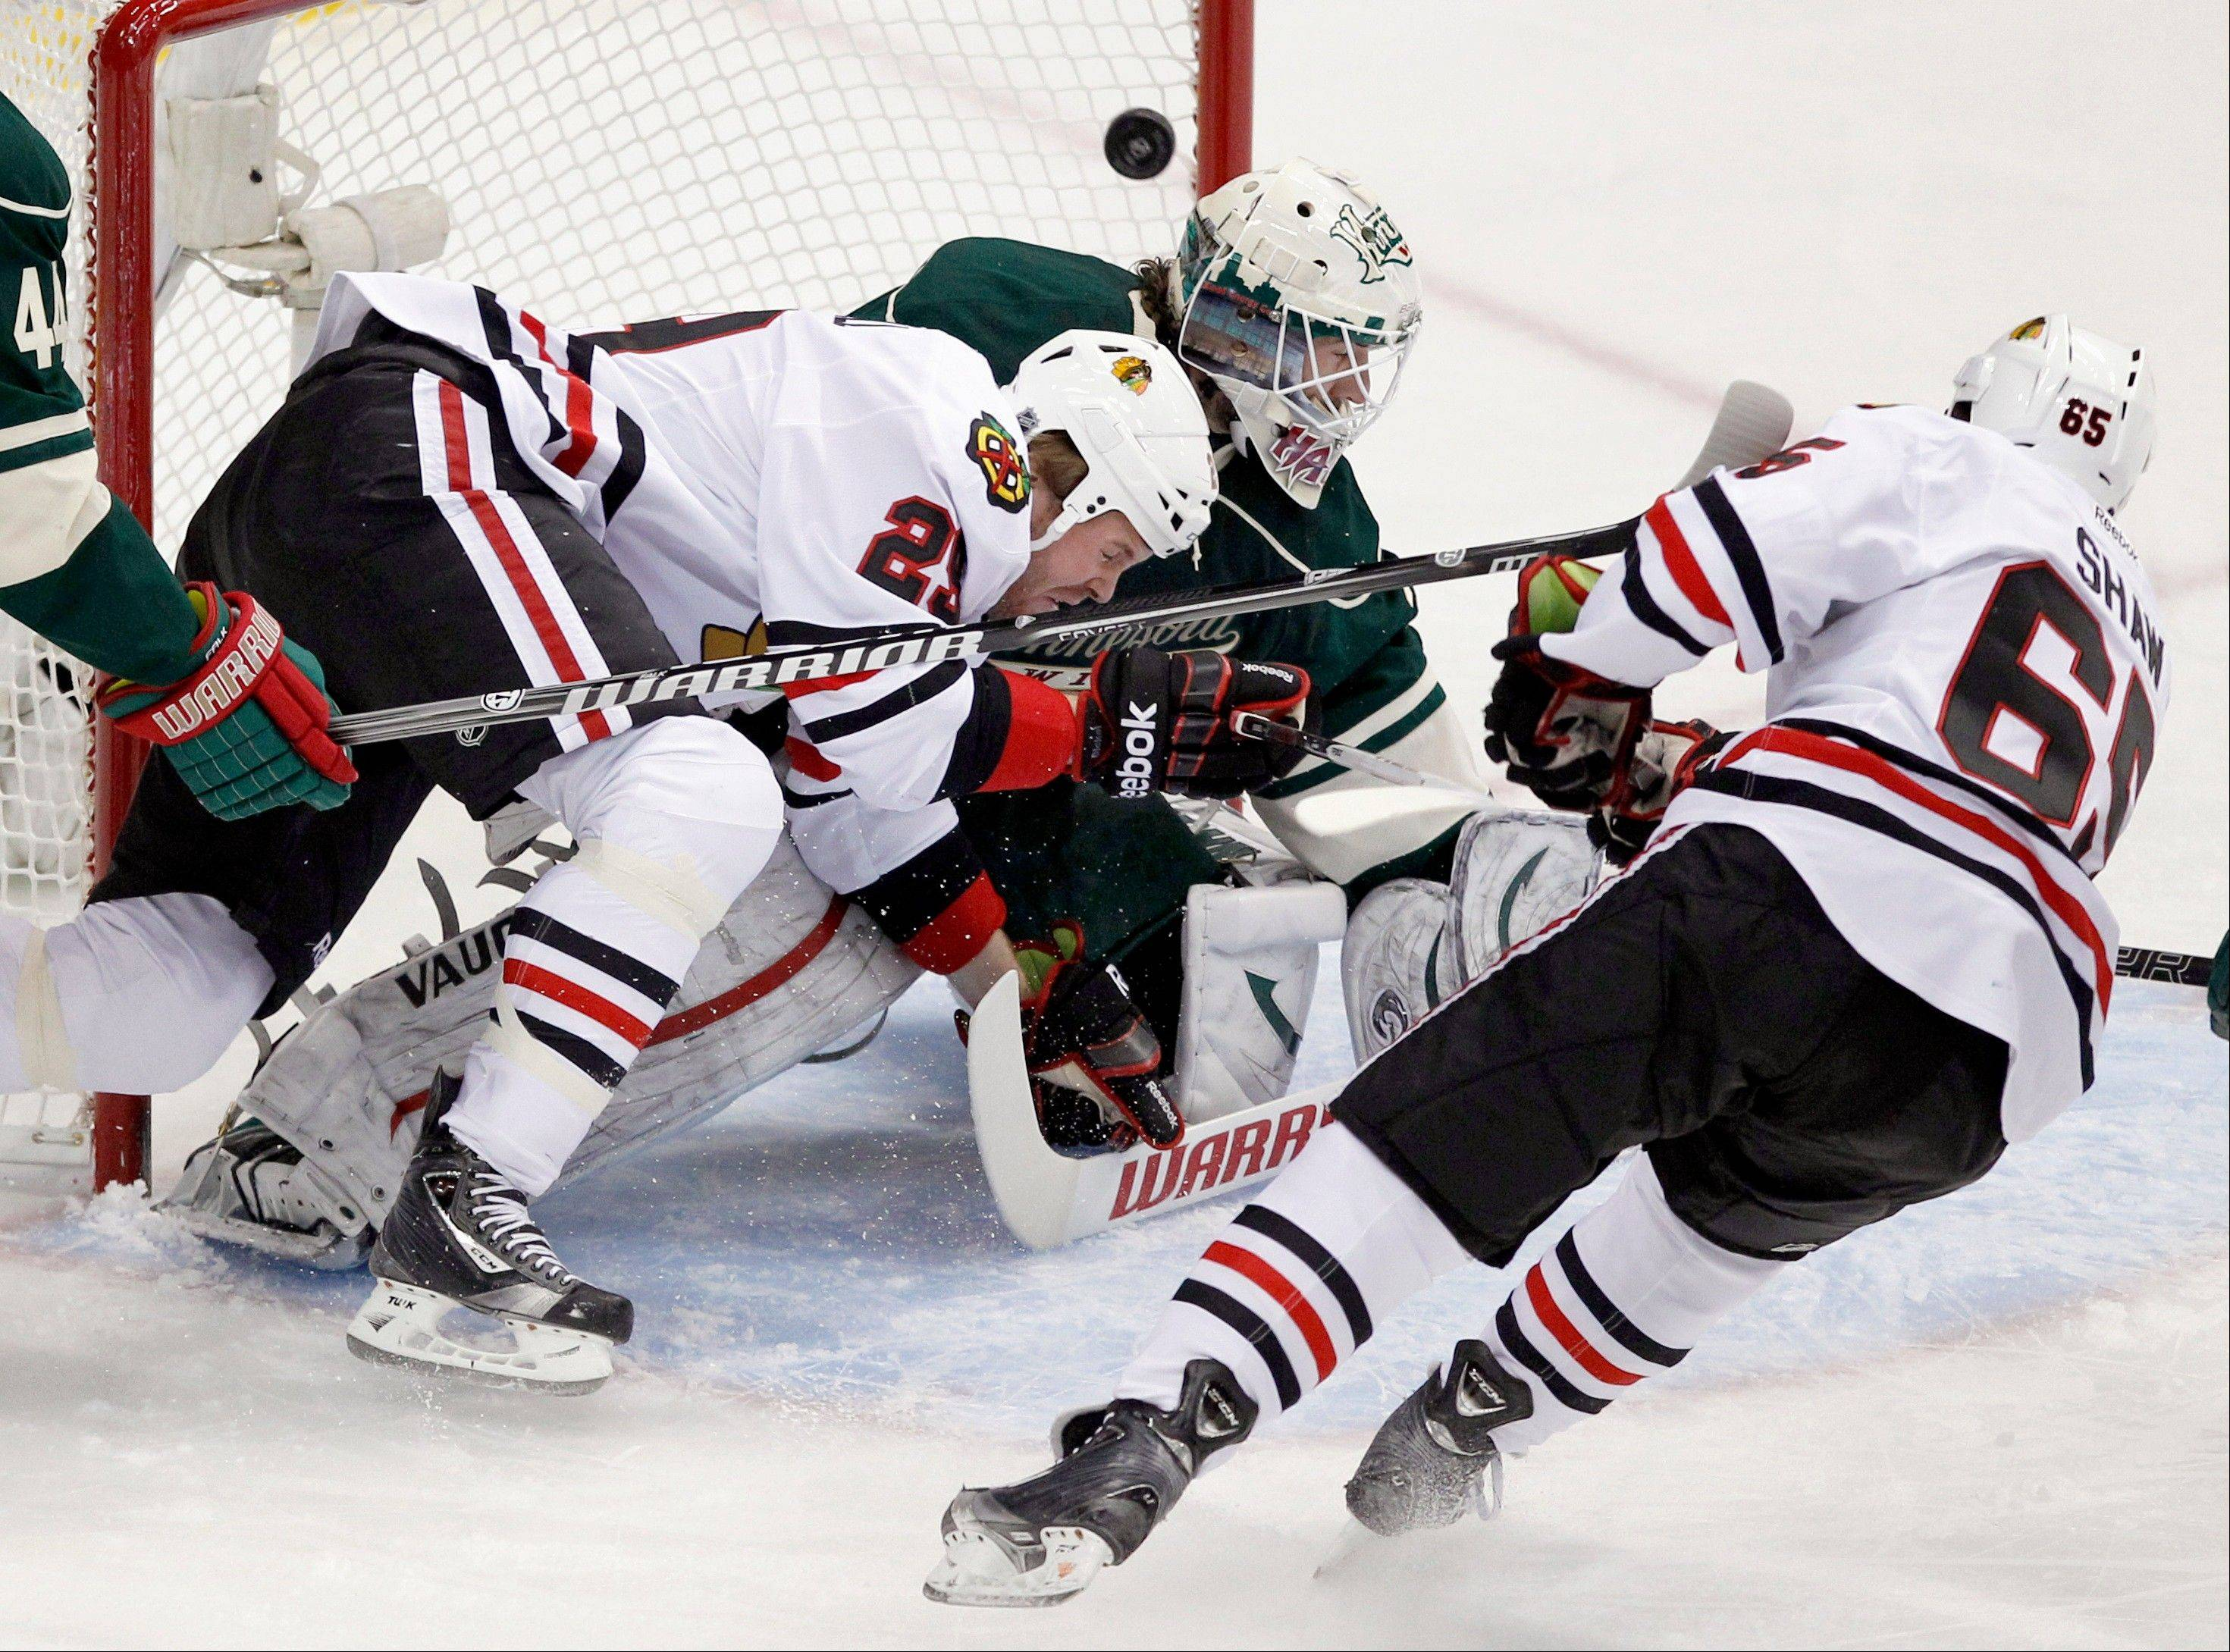 Chicago Blackhawks center Andrew Shaw (65) scores on Minnesota Wild goalie Josh Harding as Blackhawks' Bryan Bickell (29) pressures the goalie during the Chicago-Minnesota game Wednesday in St. Paul. The Wild handed the Blackhawks their first loss of the season.